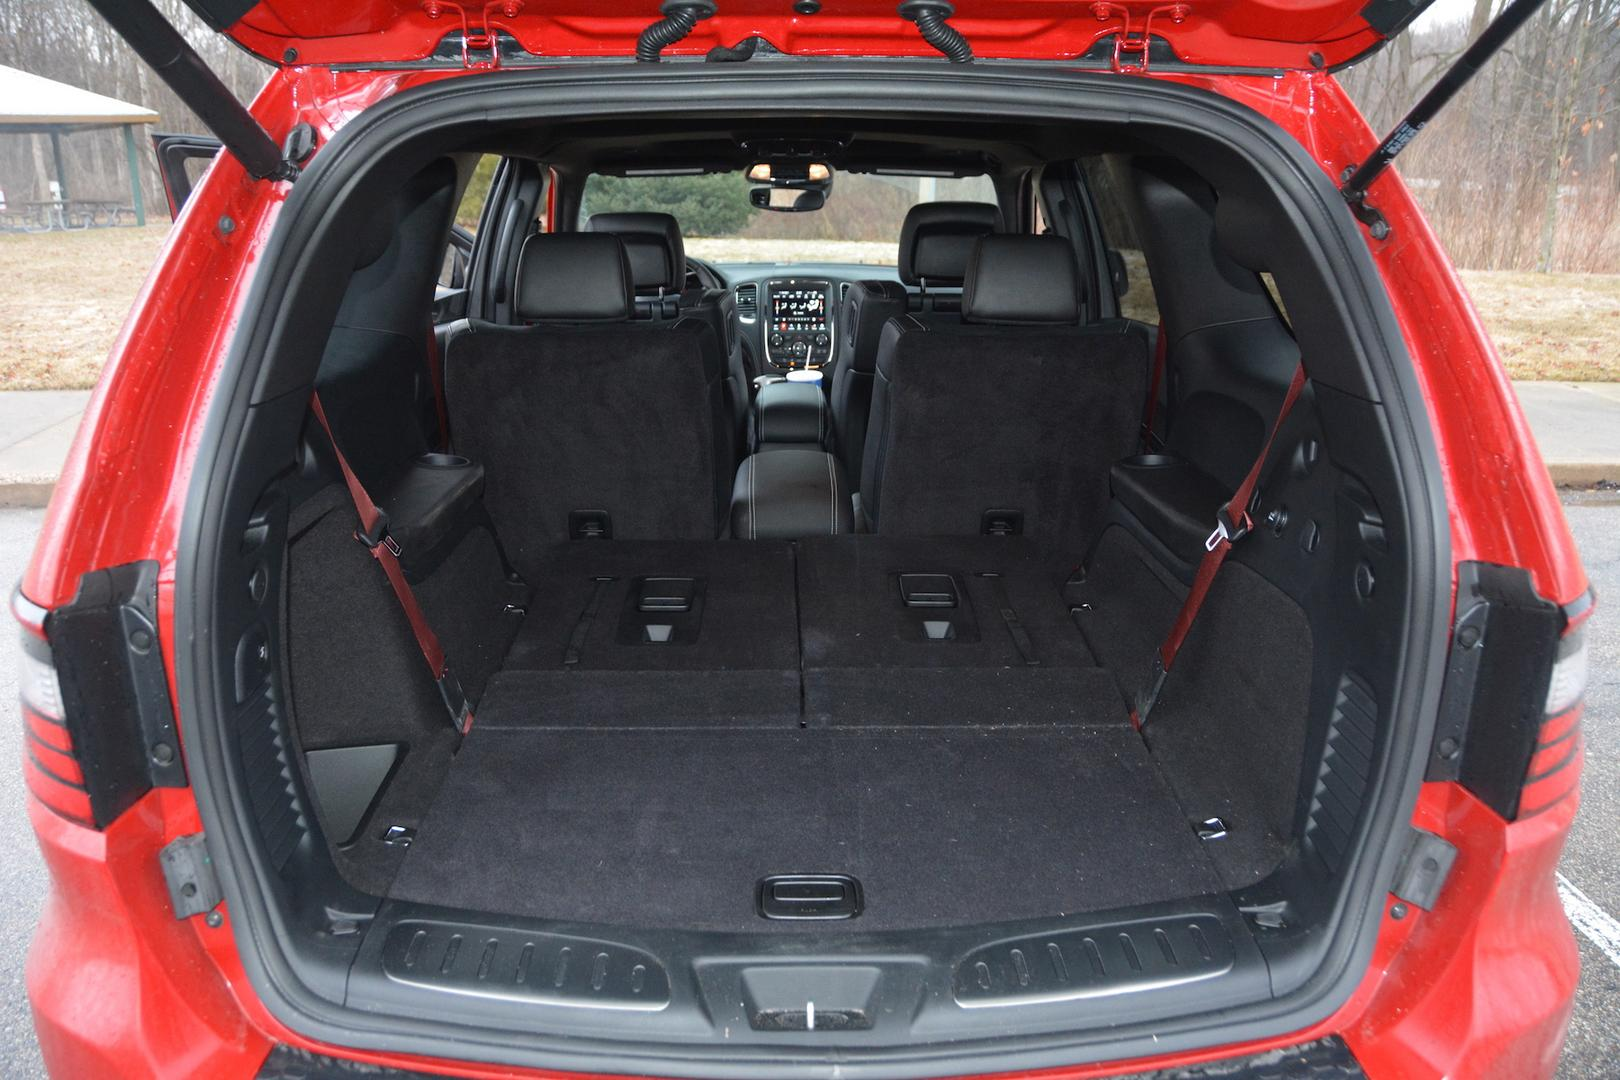 2020 Dodge Durango SRT 392 Trunk